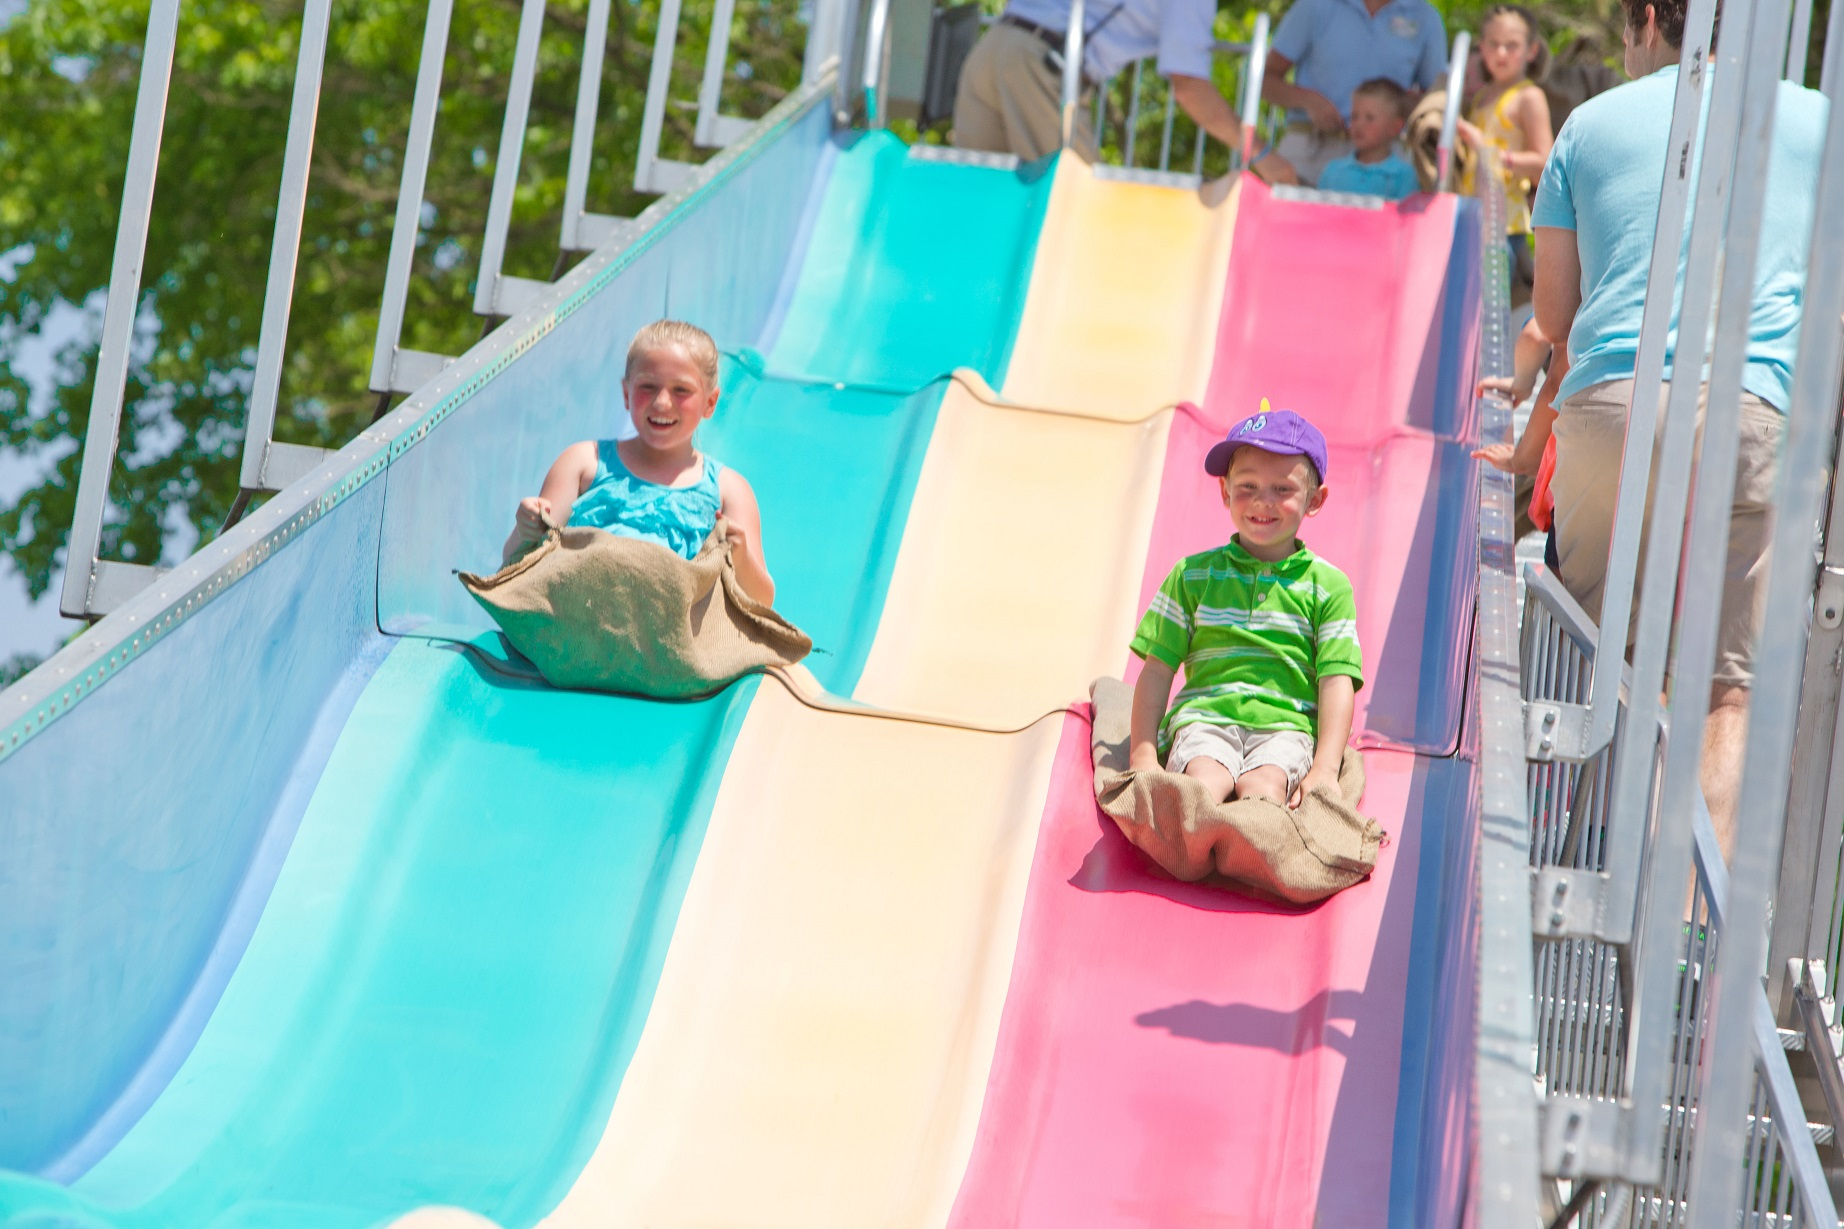 Children sliding down large multi-colored slide attraction.